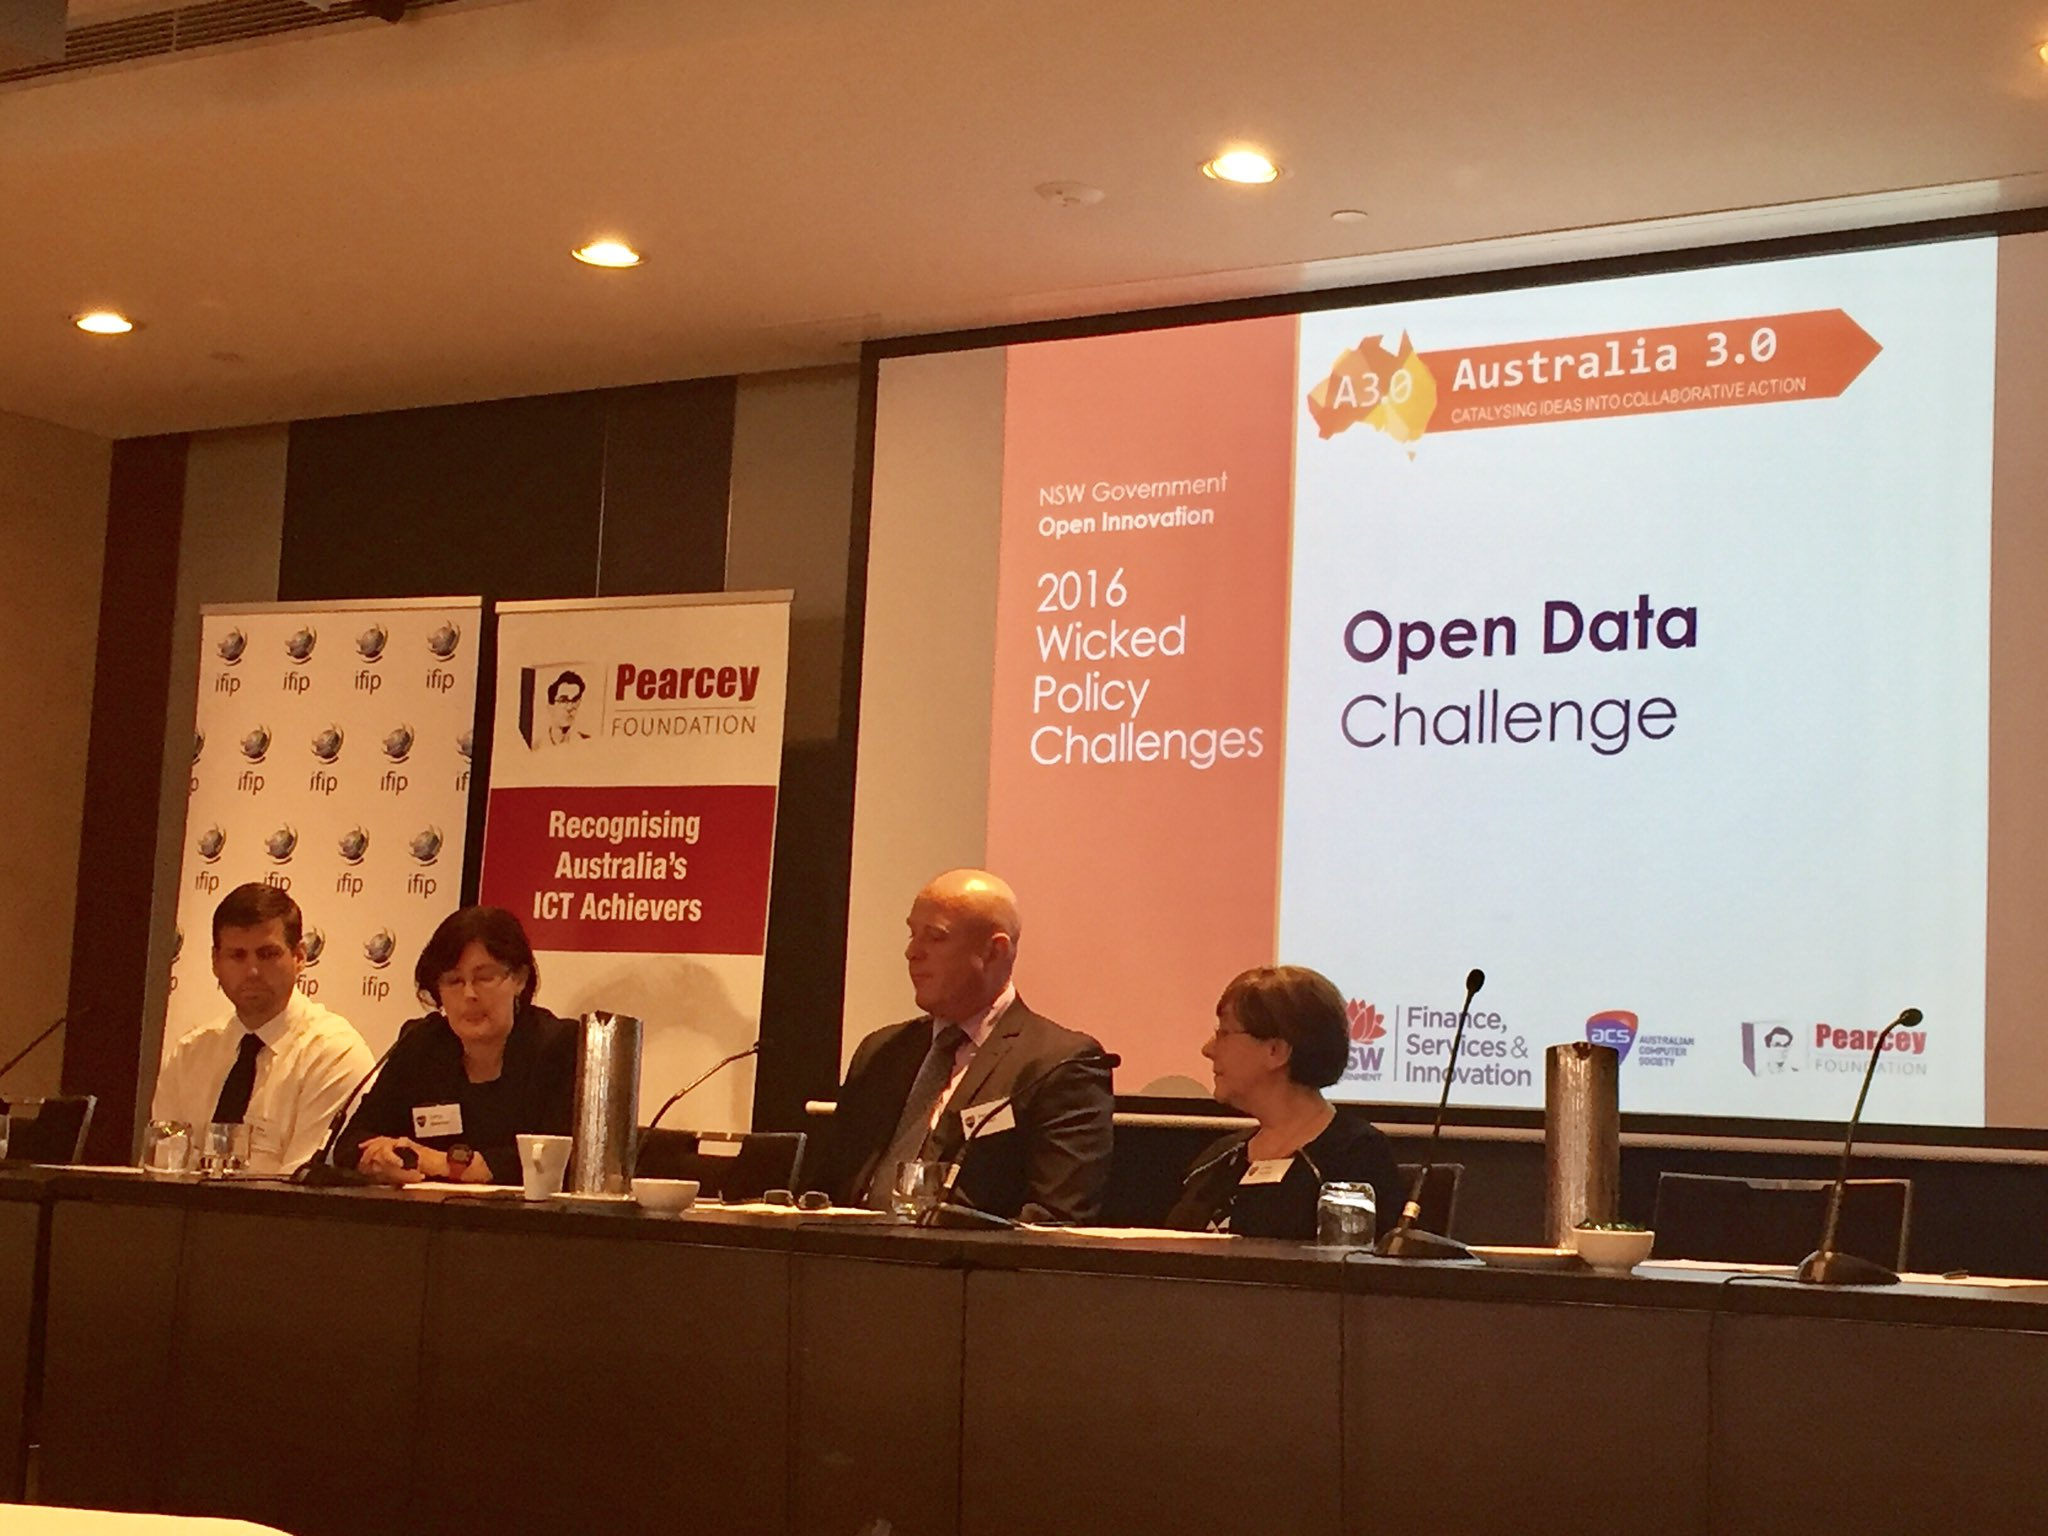 Sonya Sherman @datansw #OpenData challenge asked teams to think about how to make NSW data more usable, easier to navigate and relatable https://t.co/mu4oKv2kph